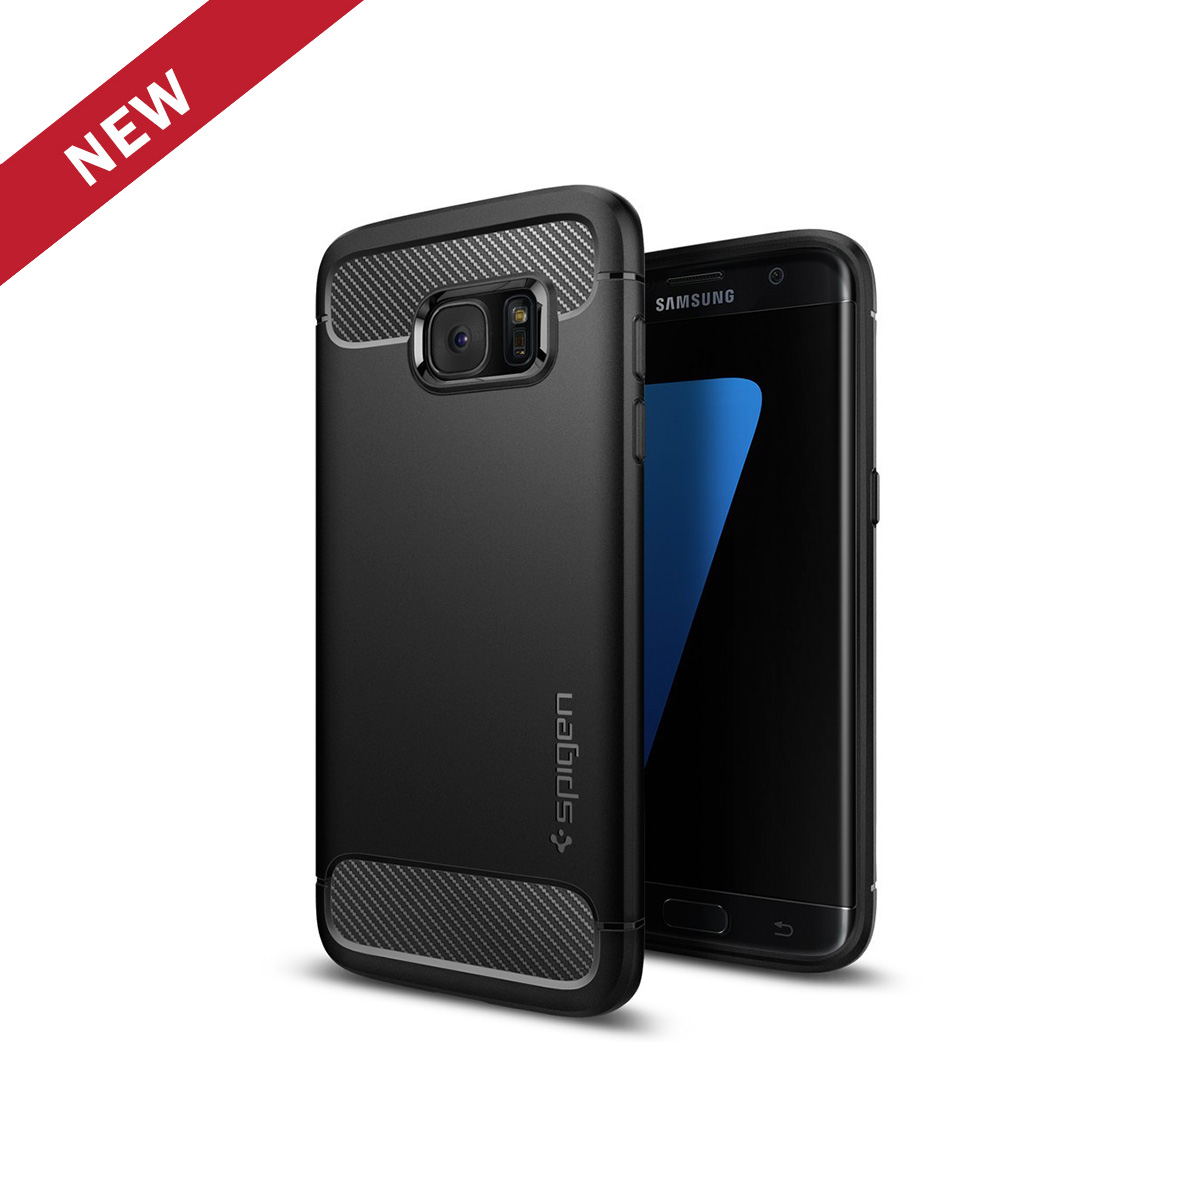 low priced 07532 e6259 Spigen Galaxy S7 Edge Case Rugged Armor